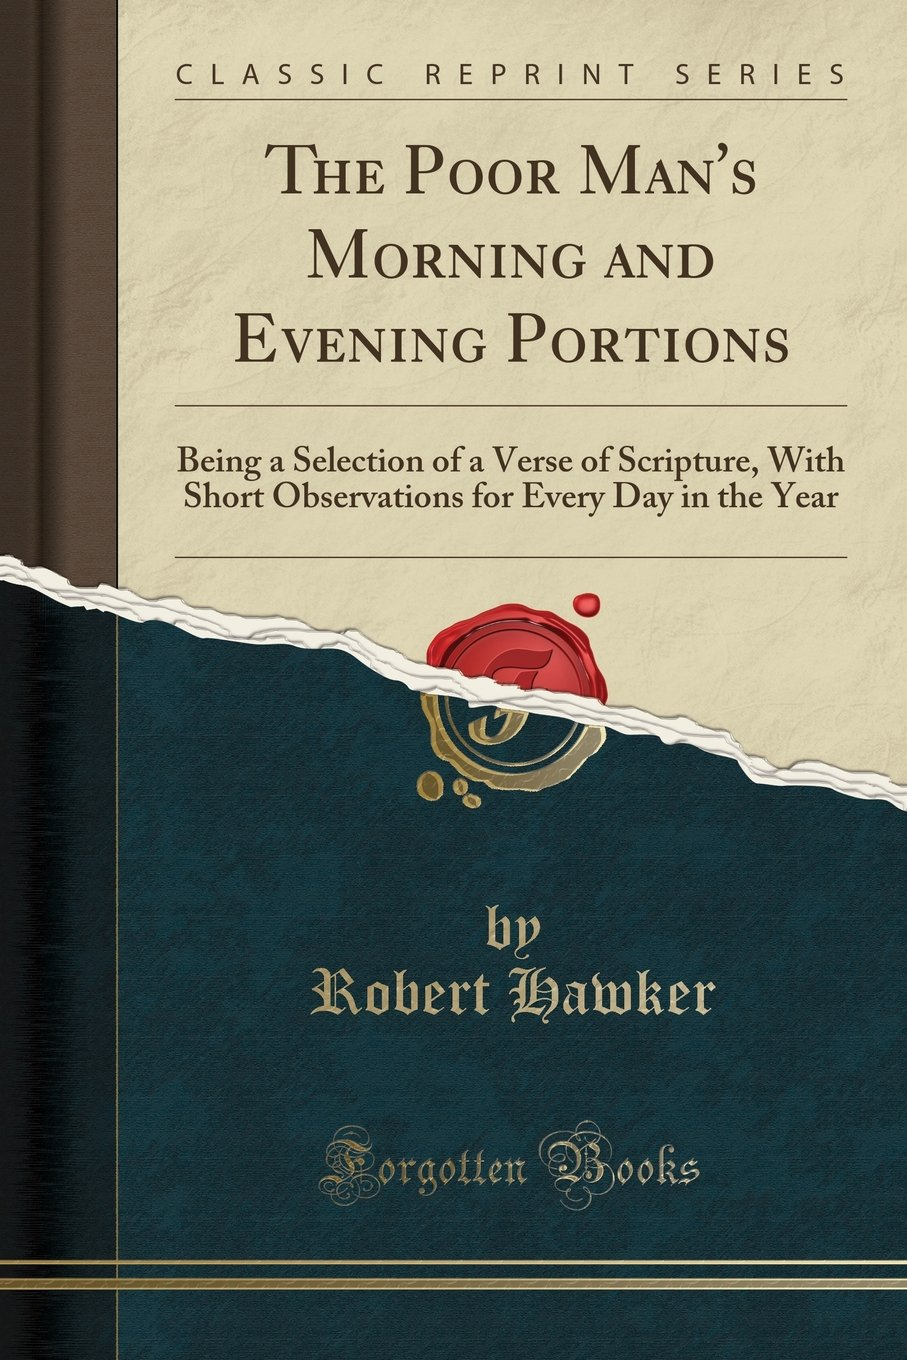 The Poor Man's Morning and Evening Portions: Being a Selection of a Verse of Scripture, With Short Observations for Every Day in the Year (Classic Reprint)